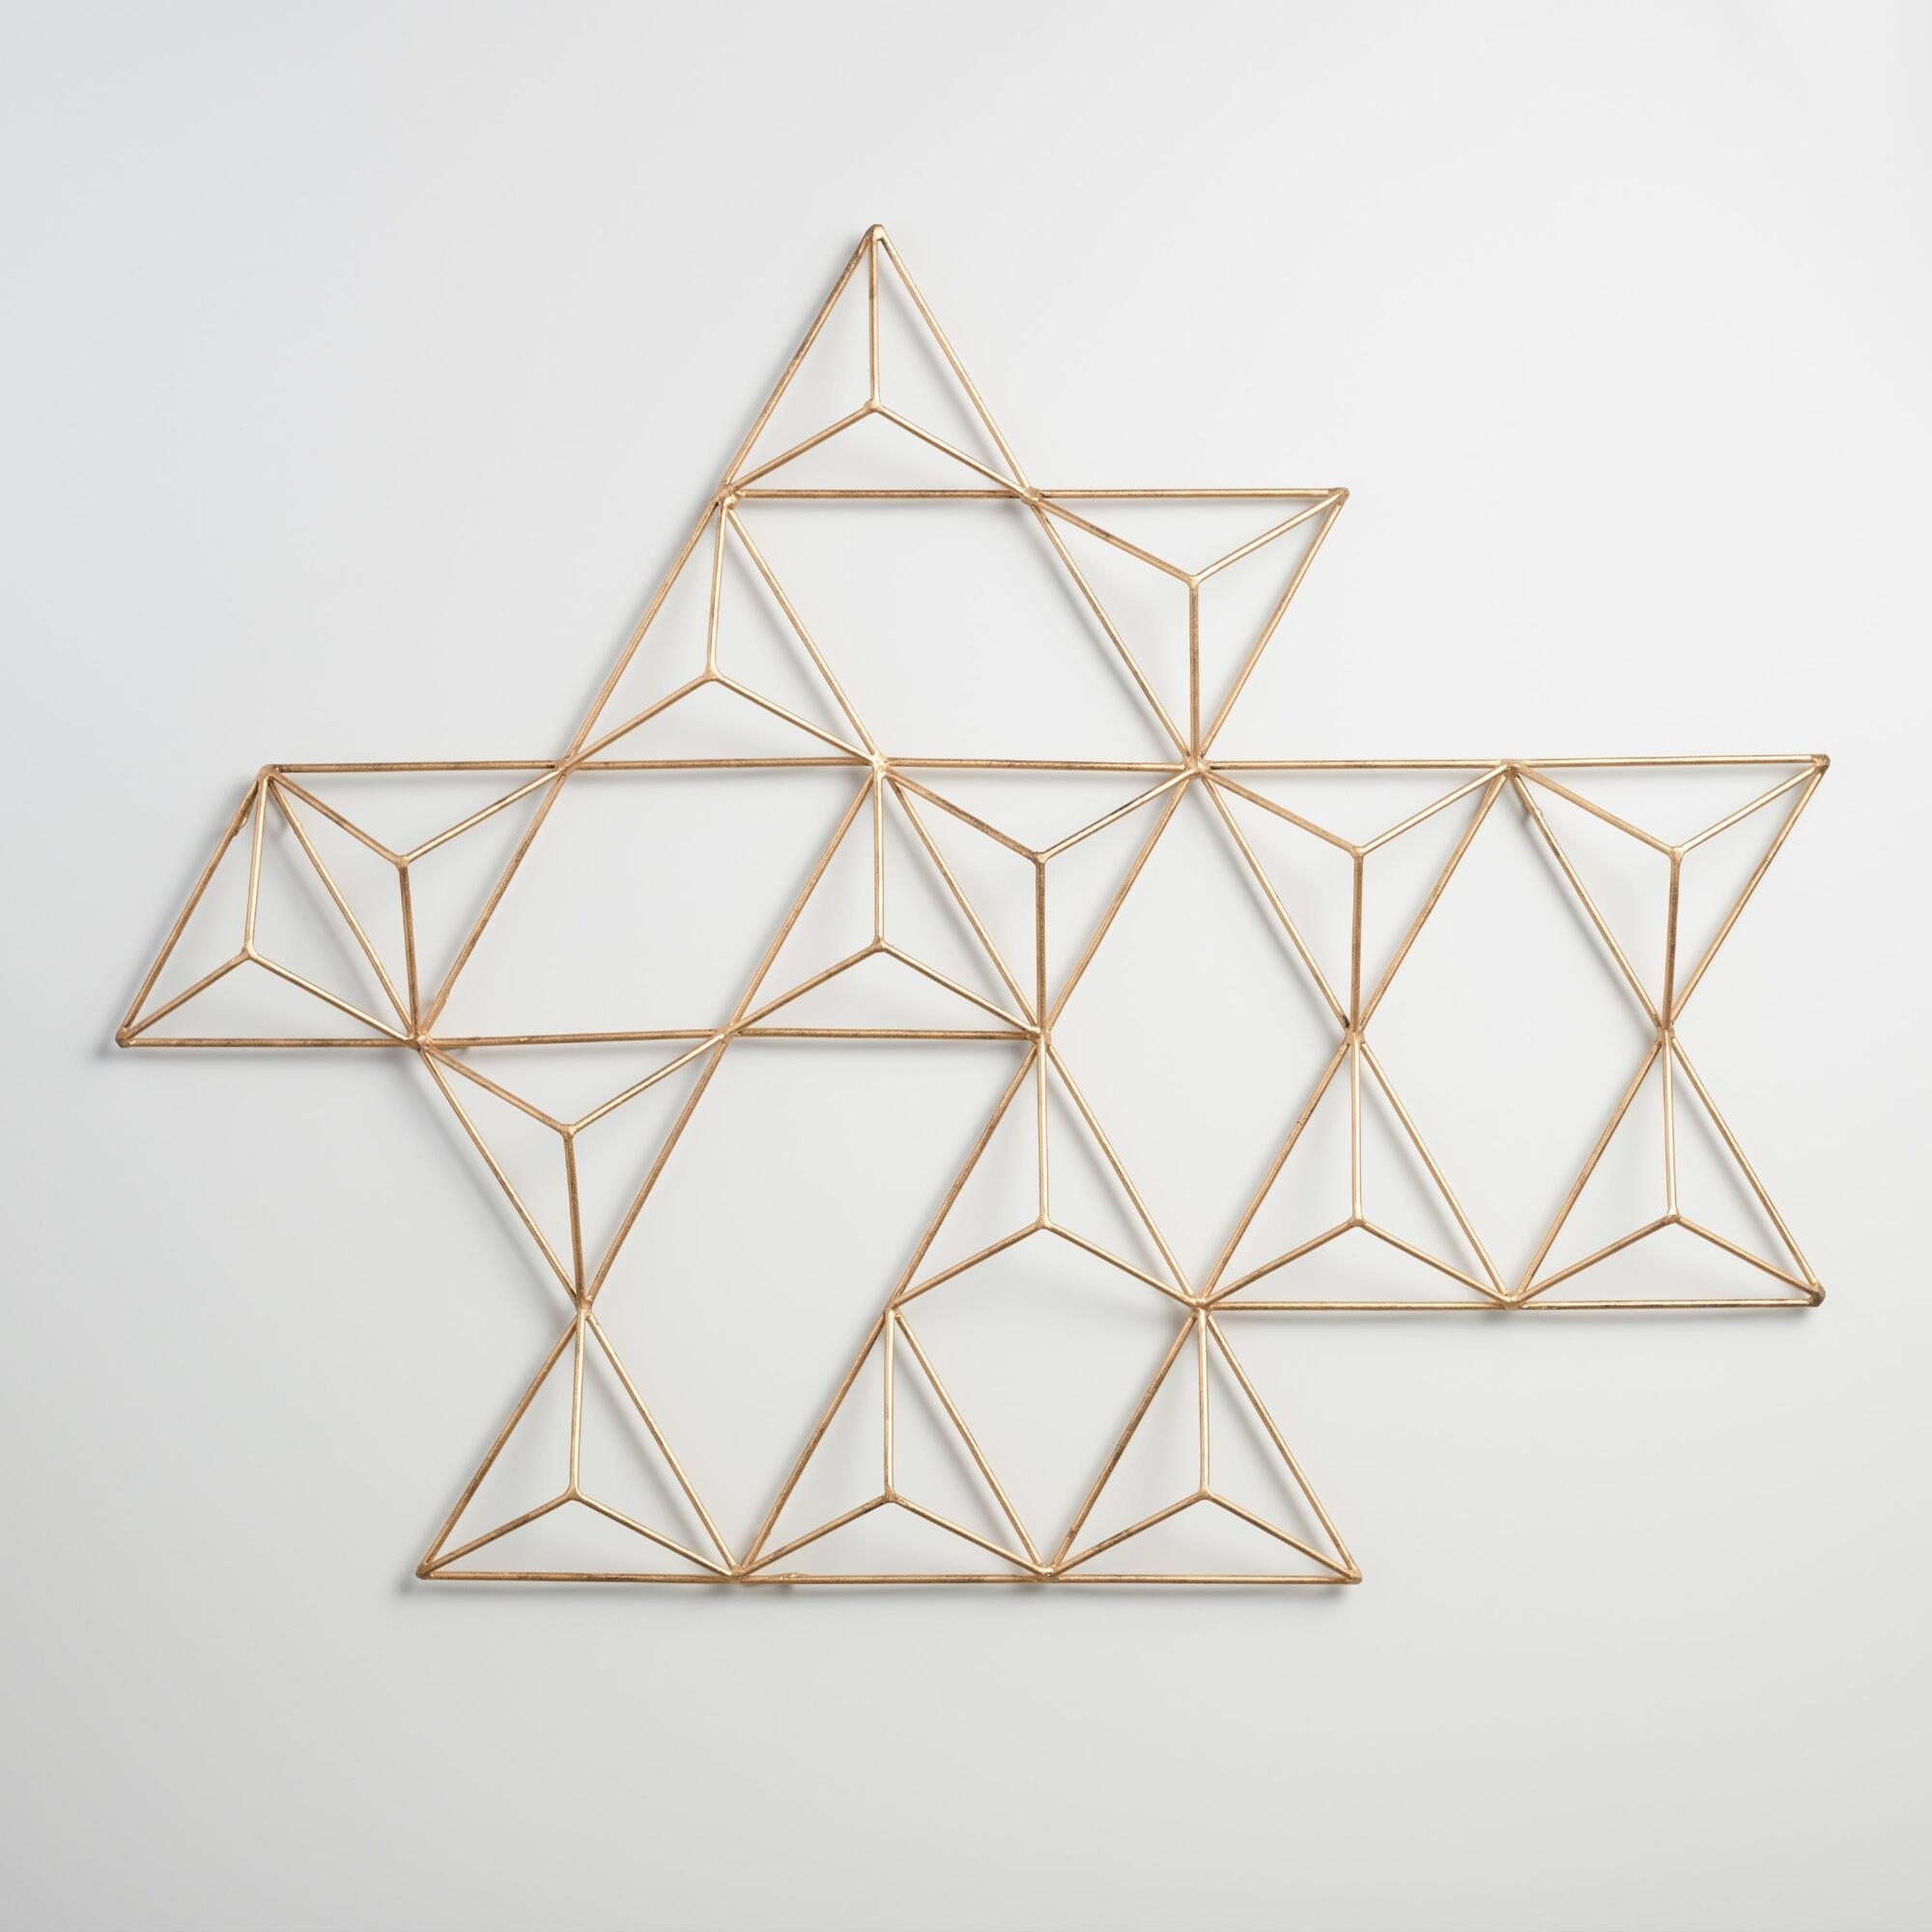 Decor : 91 Lovely Fabric Wall Art Ideas Geometric Wall Art Modern Within Newest Geometric Fabric Wall Art (View 6 of 15)